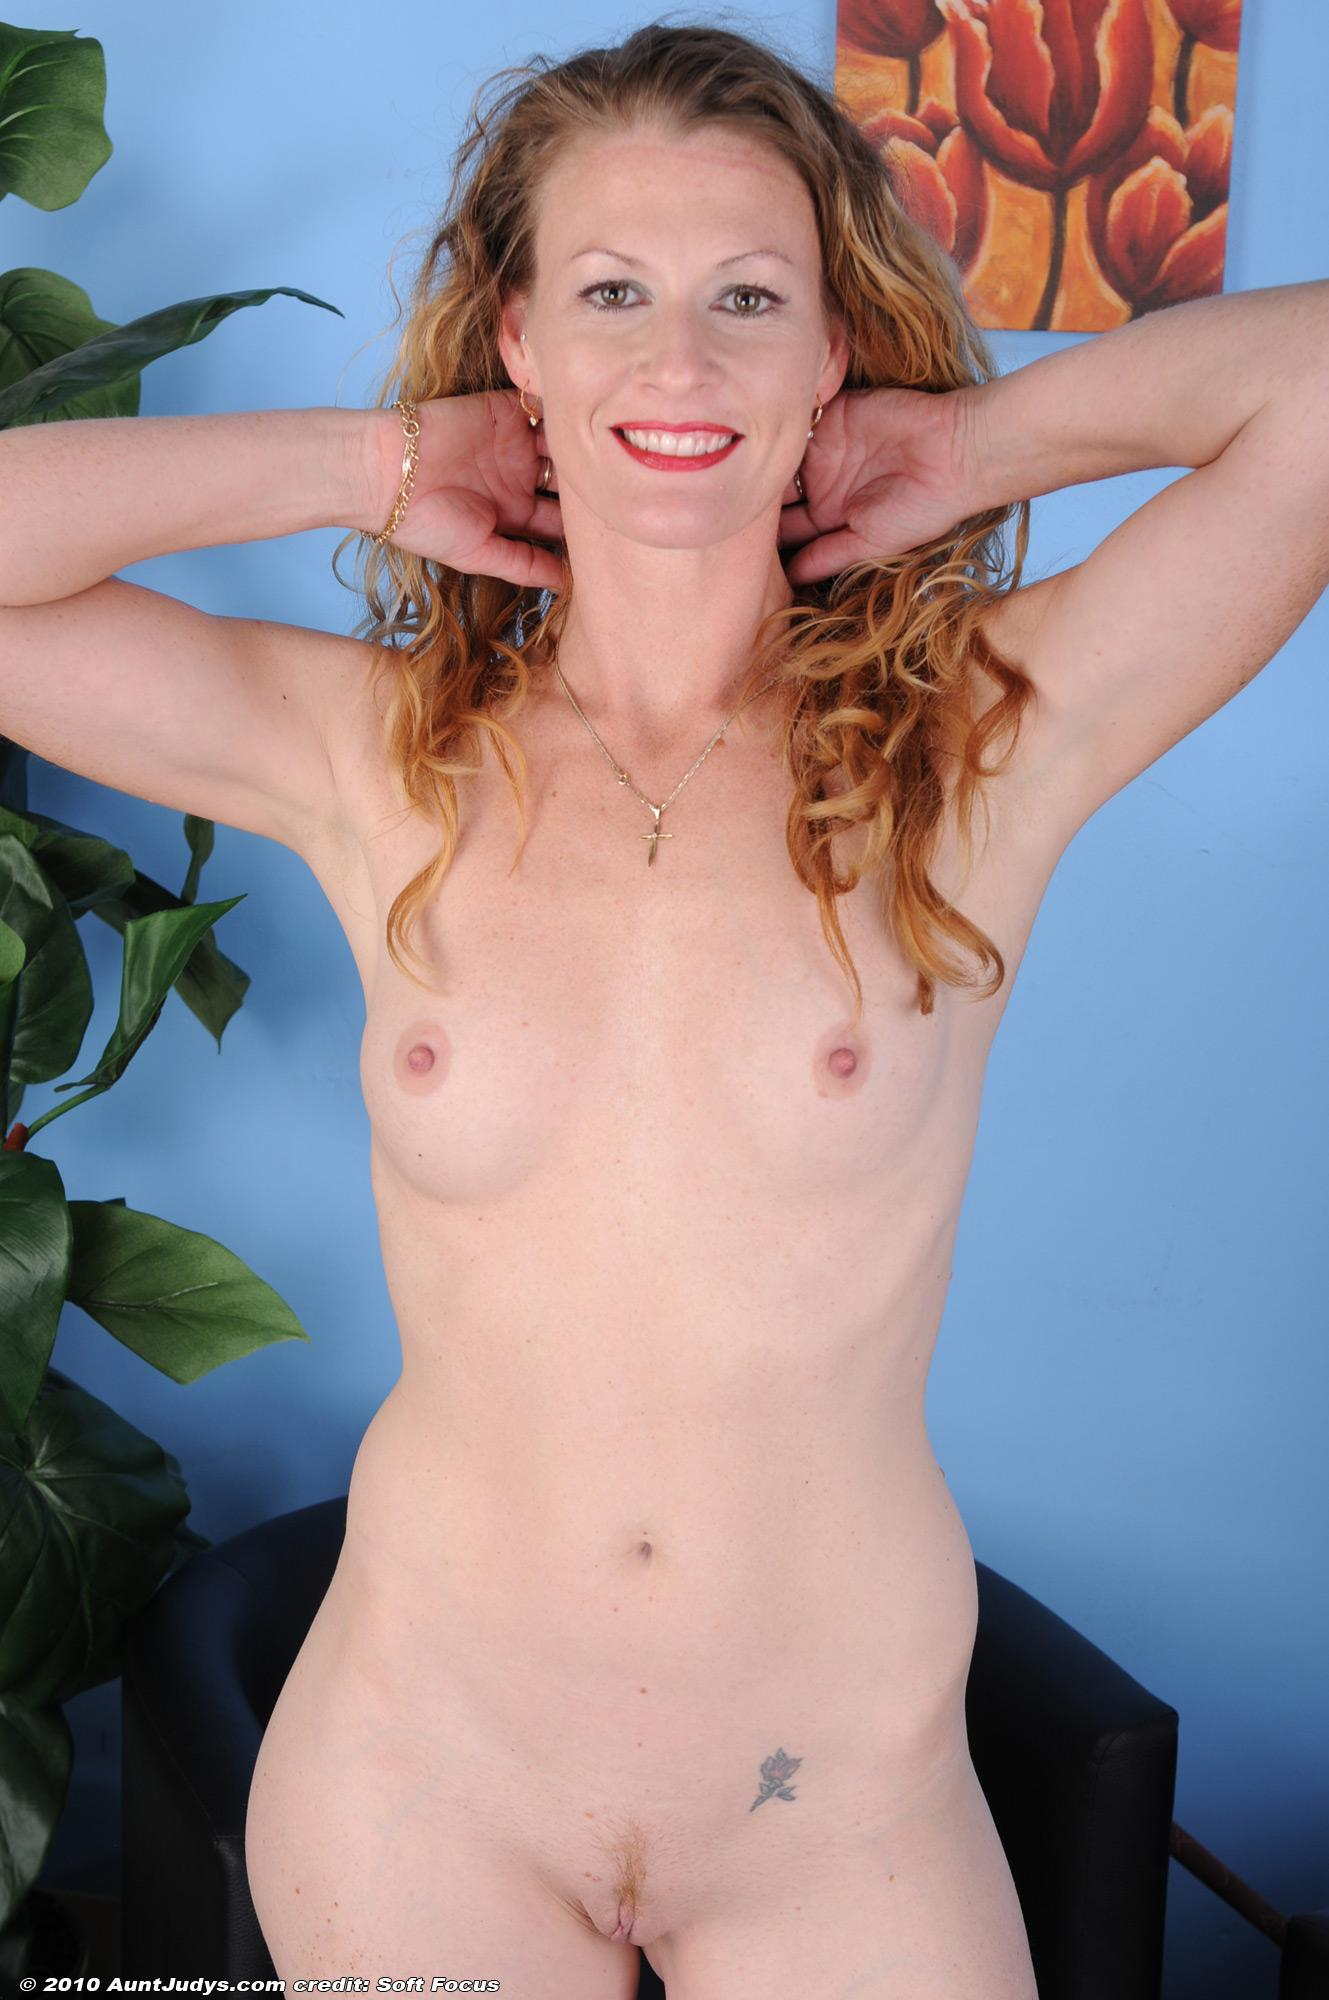 Accomplished blonde housewife sports red lips while undressing for her first nude gig